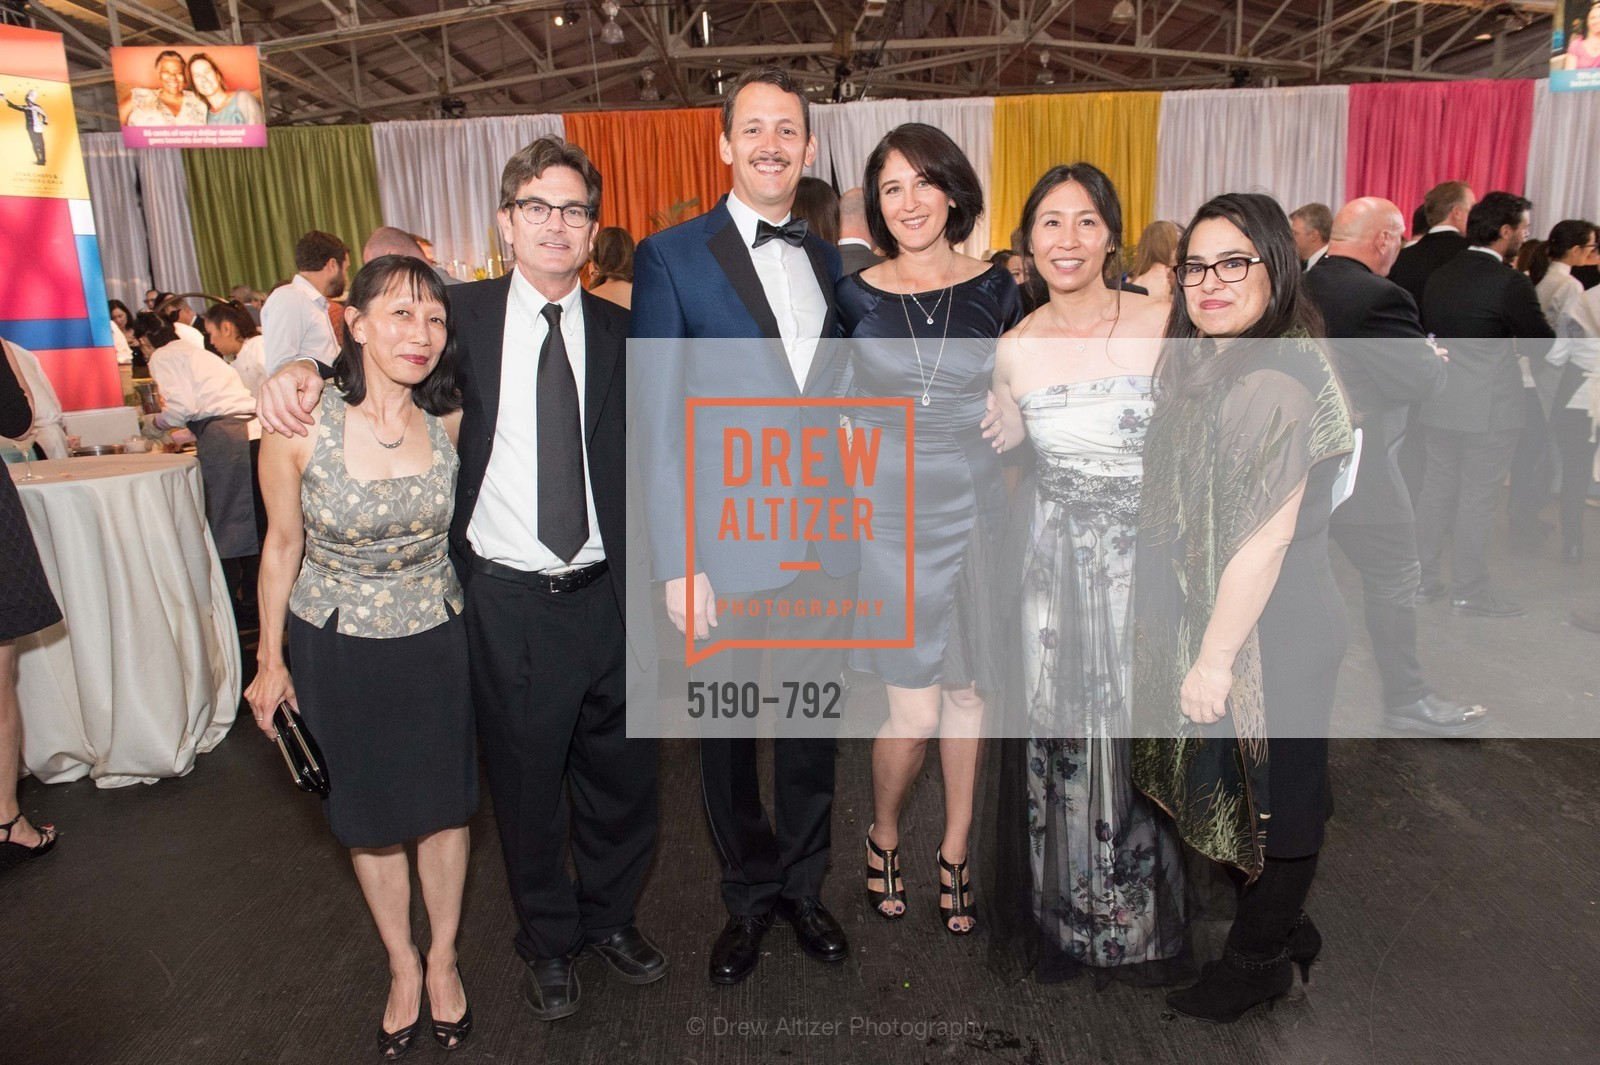 Karen Cew, Ted Bervalen, David Tews, Michelle Ortega, Vivien Thorp, Siciliana Trevino, MEALS ON WHEELS OF SAN FRANCISCO'S 28th Annual Star Chefs and Vintners Gala, US, April 20th, 2015,Drew Altizer, Drew Altizer Photography, full-service agency, private events, San Francisco photographer, photographer california